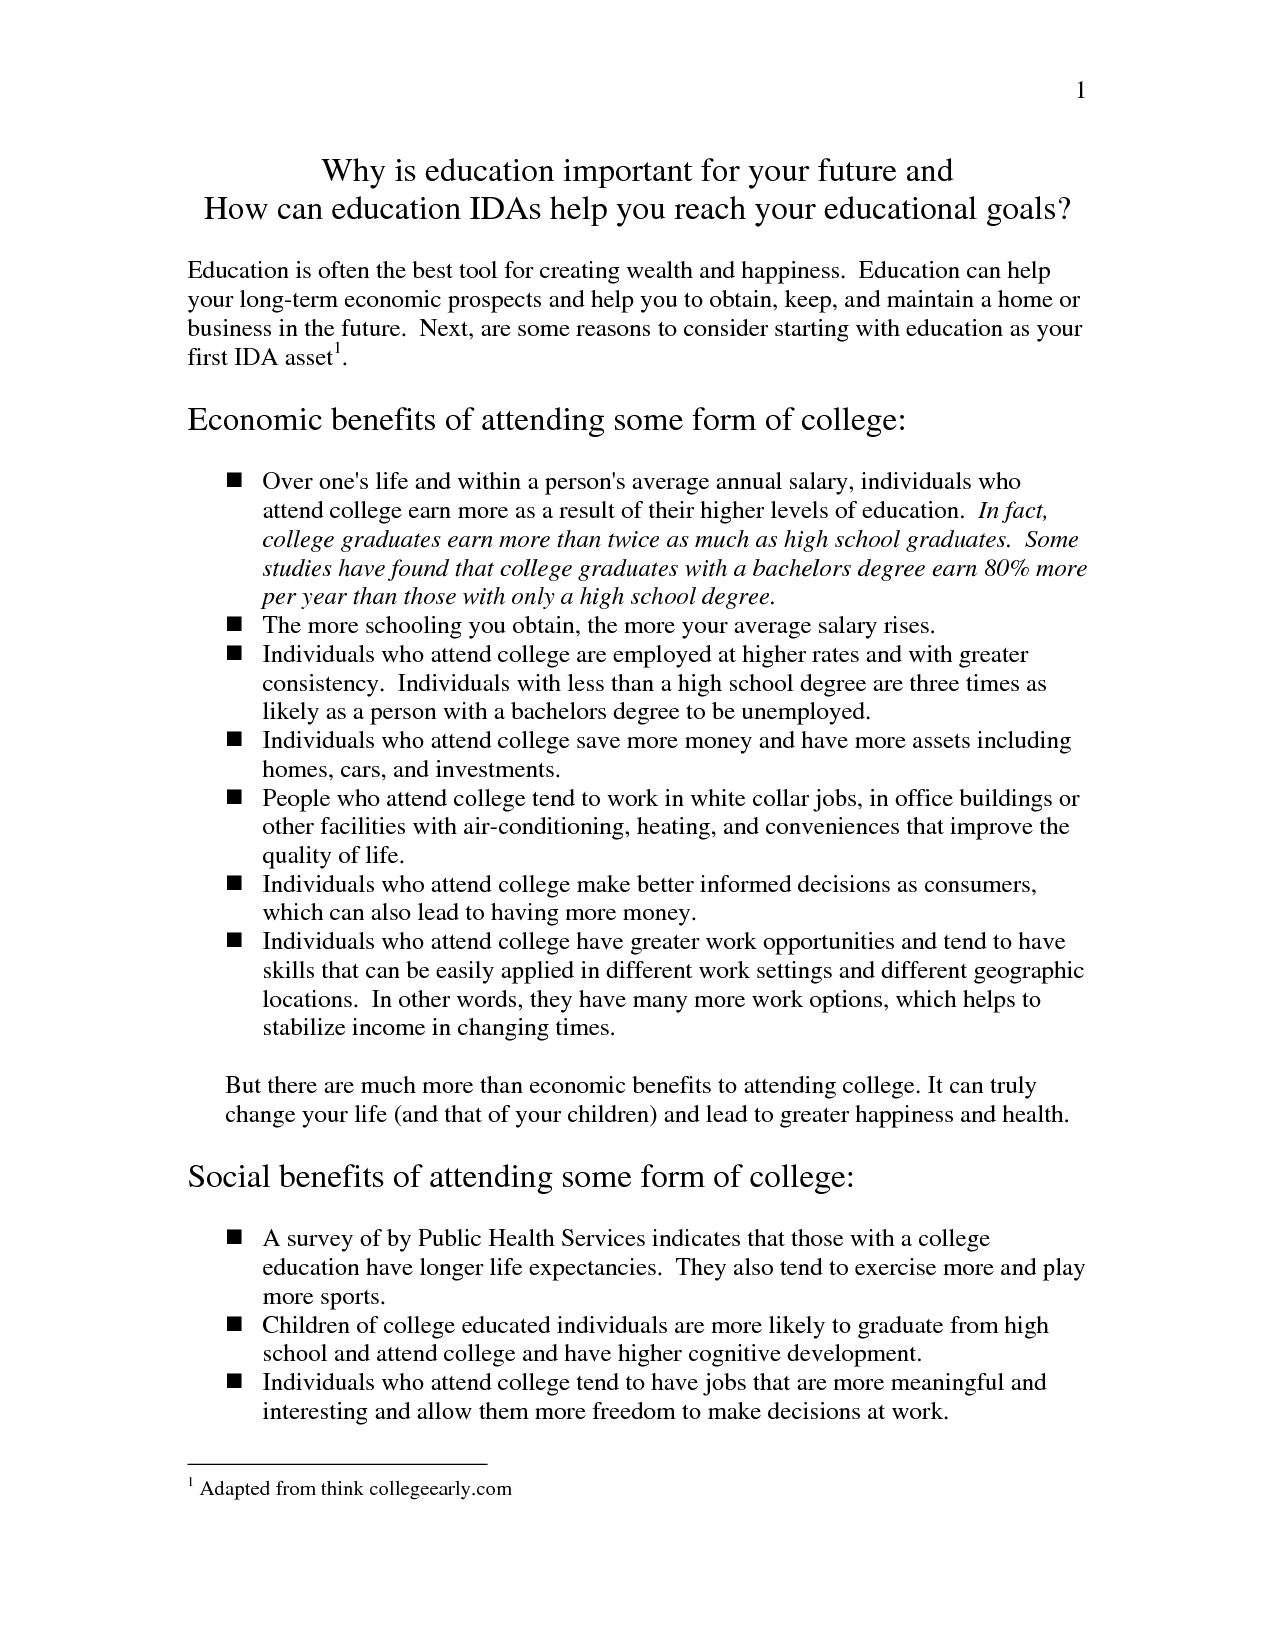 College Education Opinion Essay